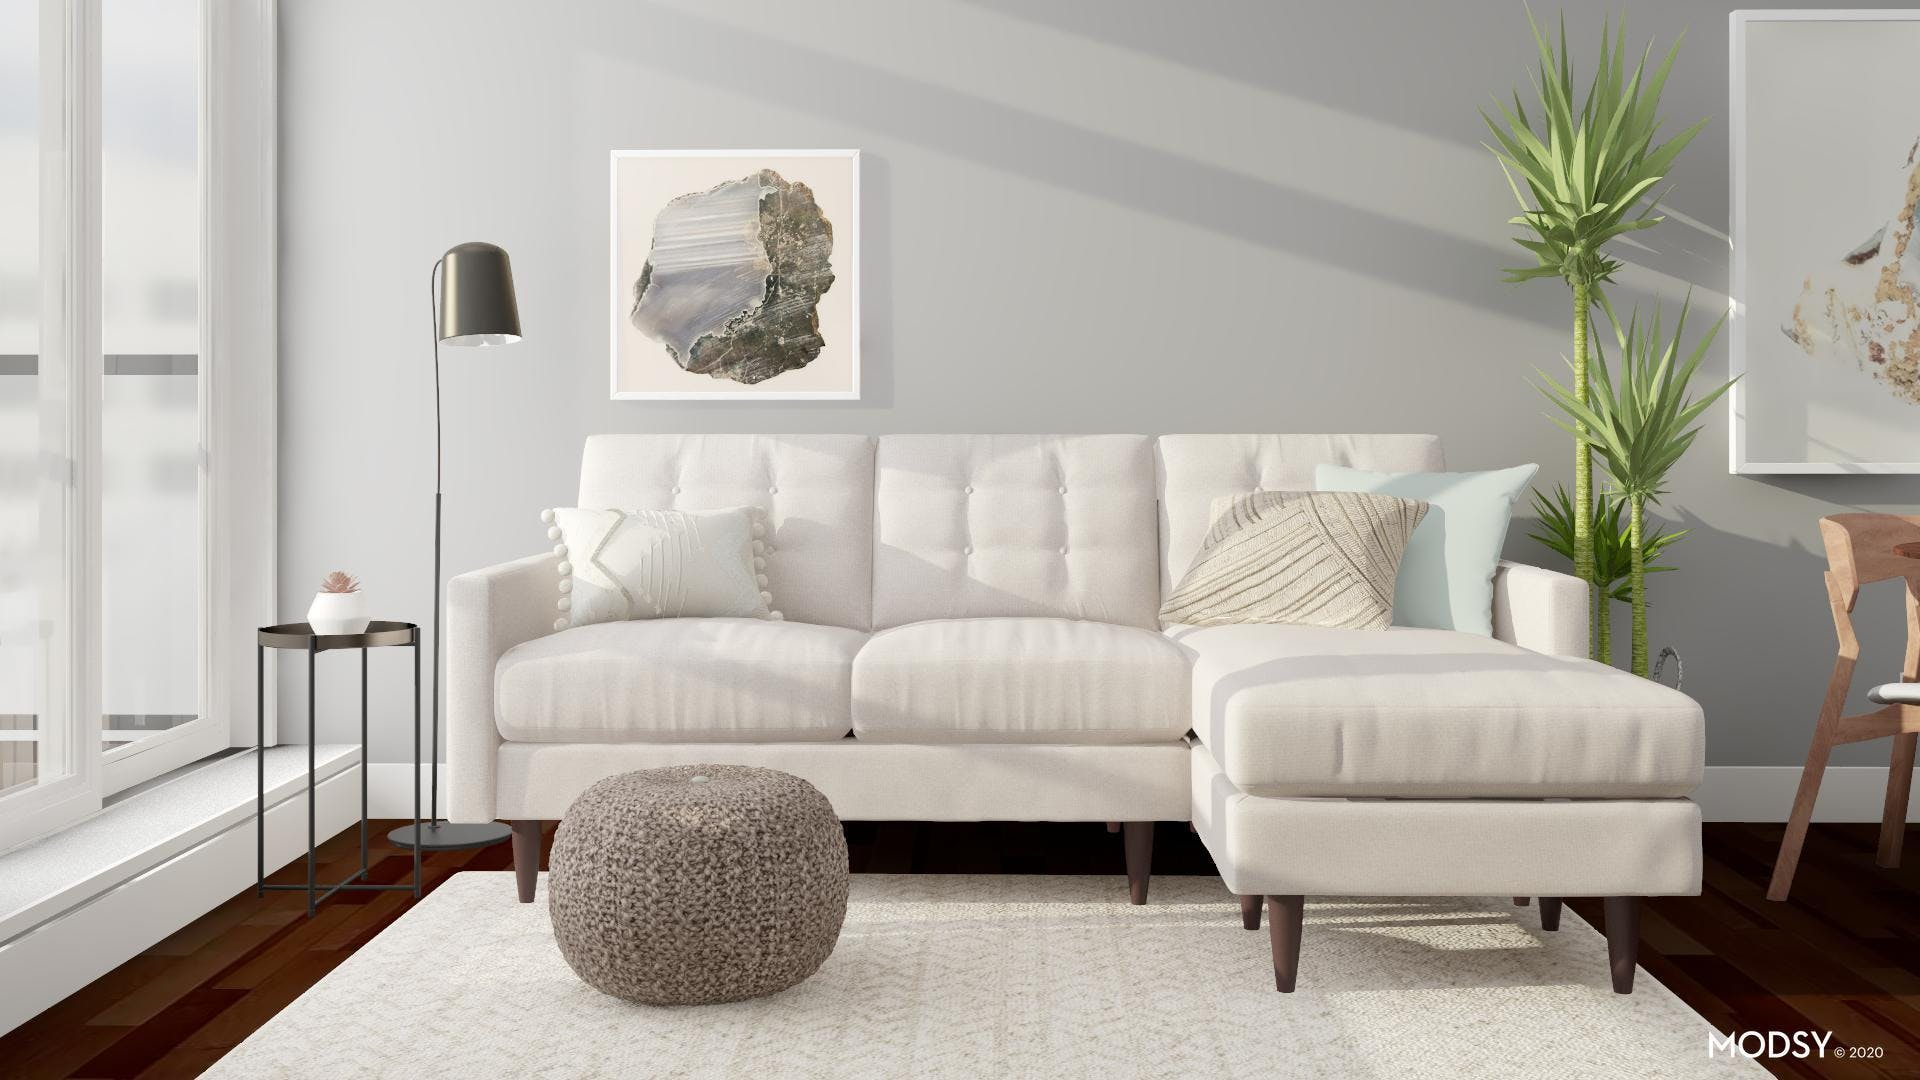 Sweet Sectional for a Small Room Modern Space